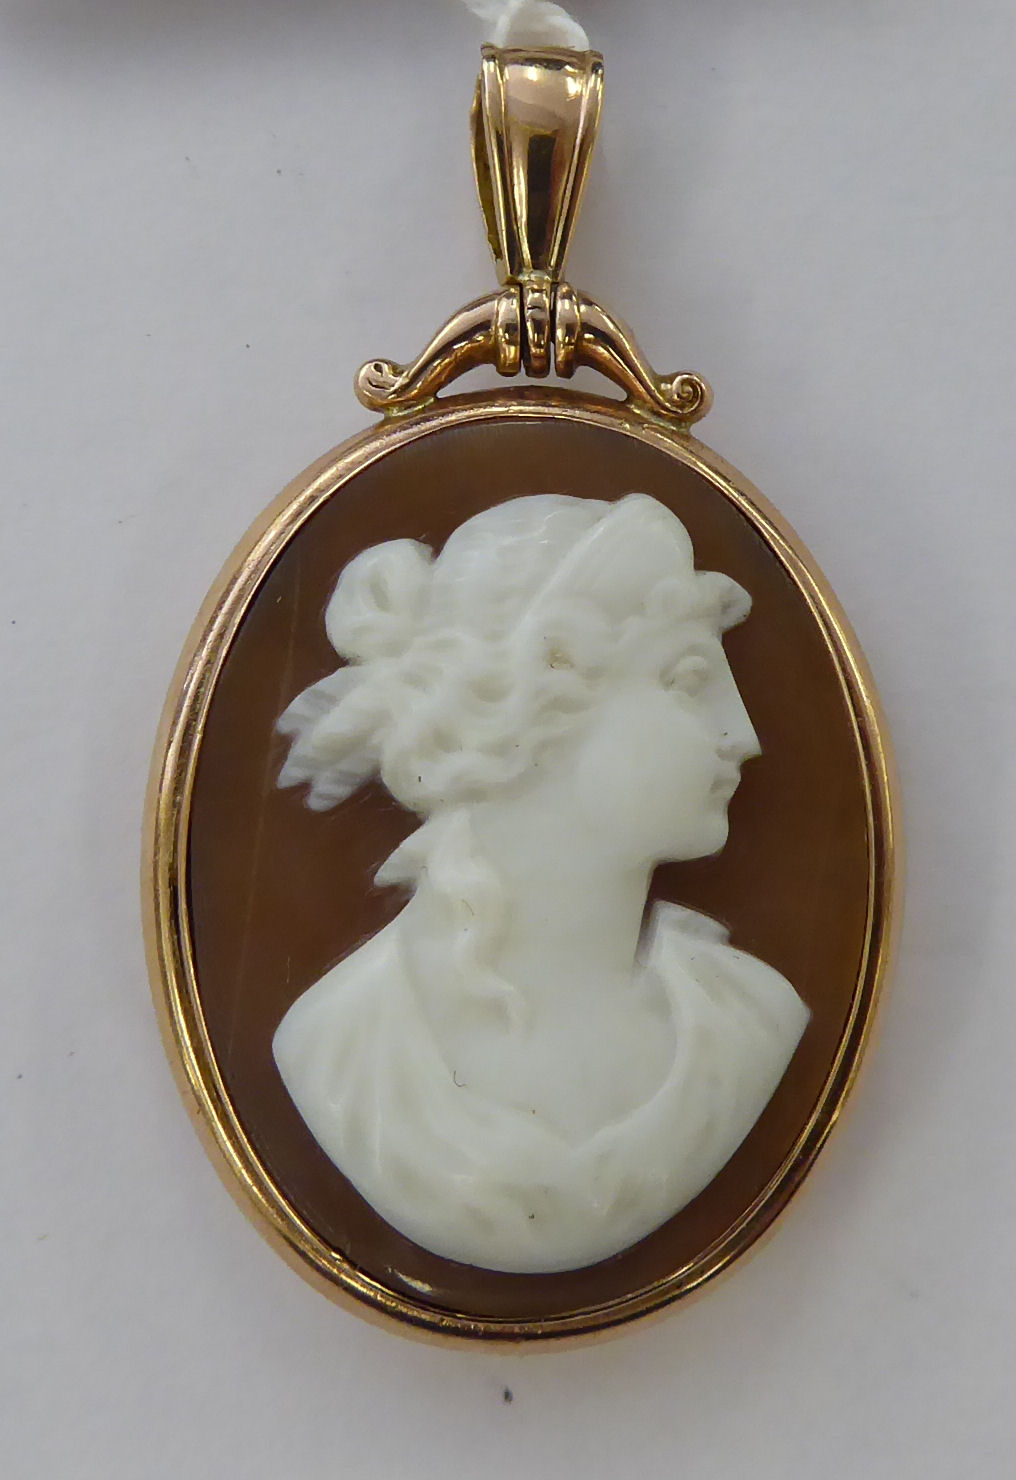 Lot 48 - An 'antique' 9ct gold and cameo set pendant,